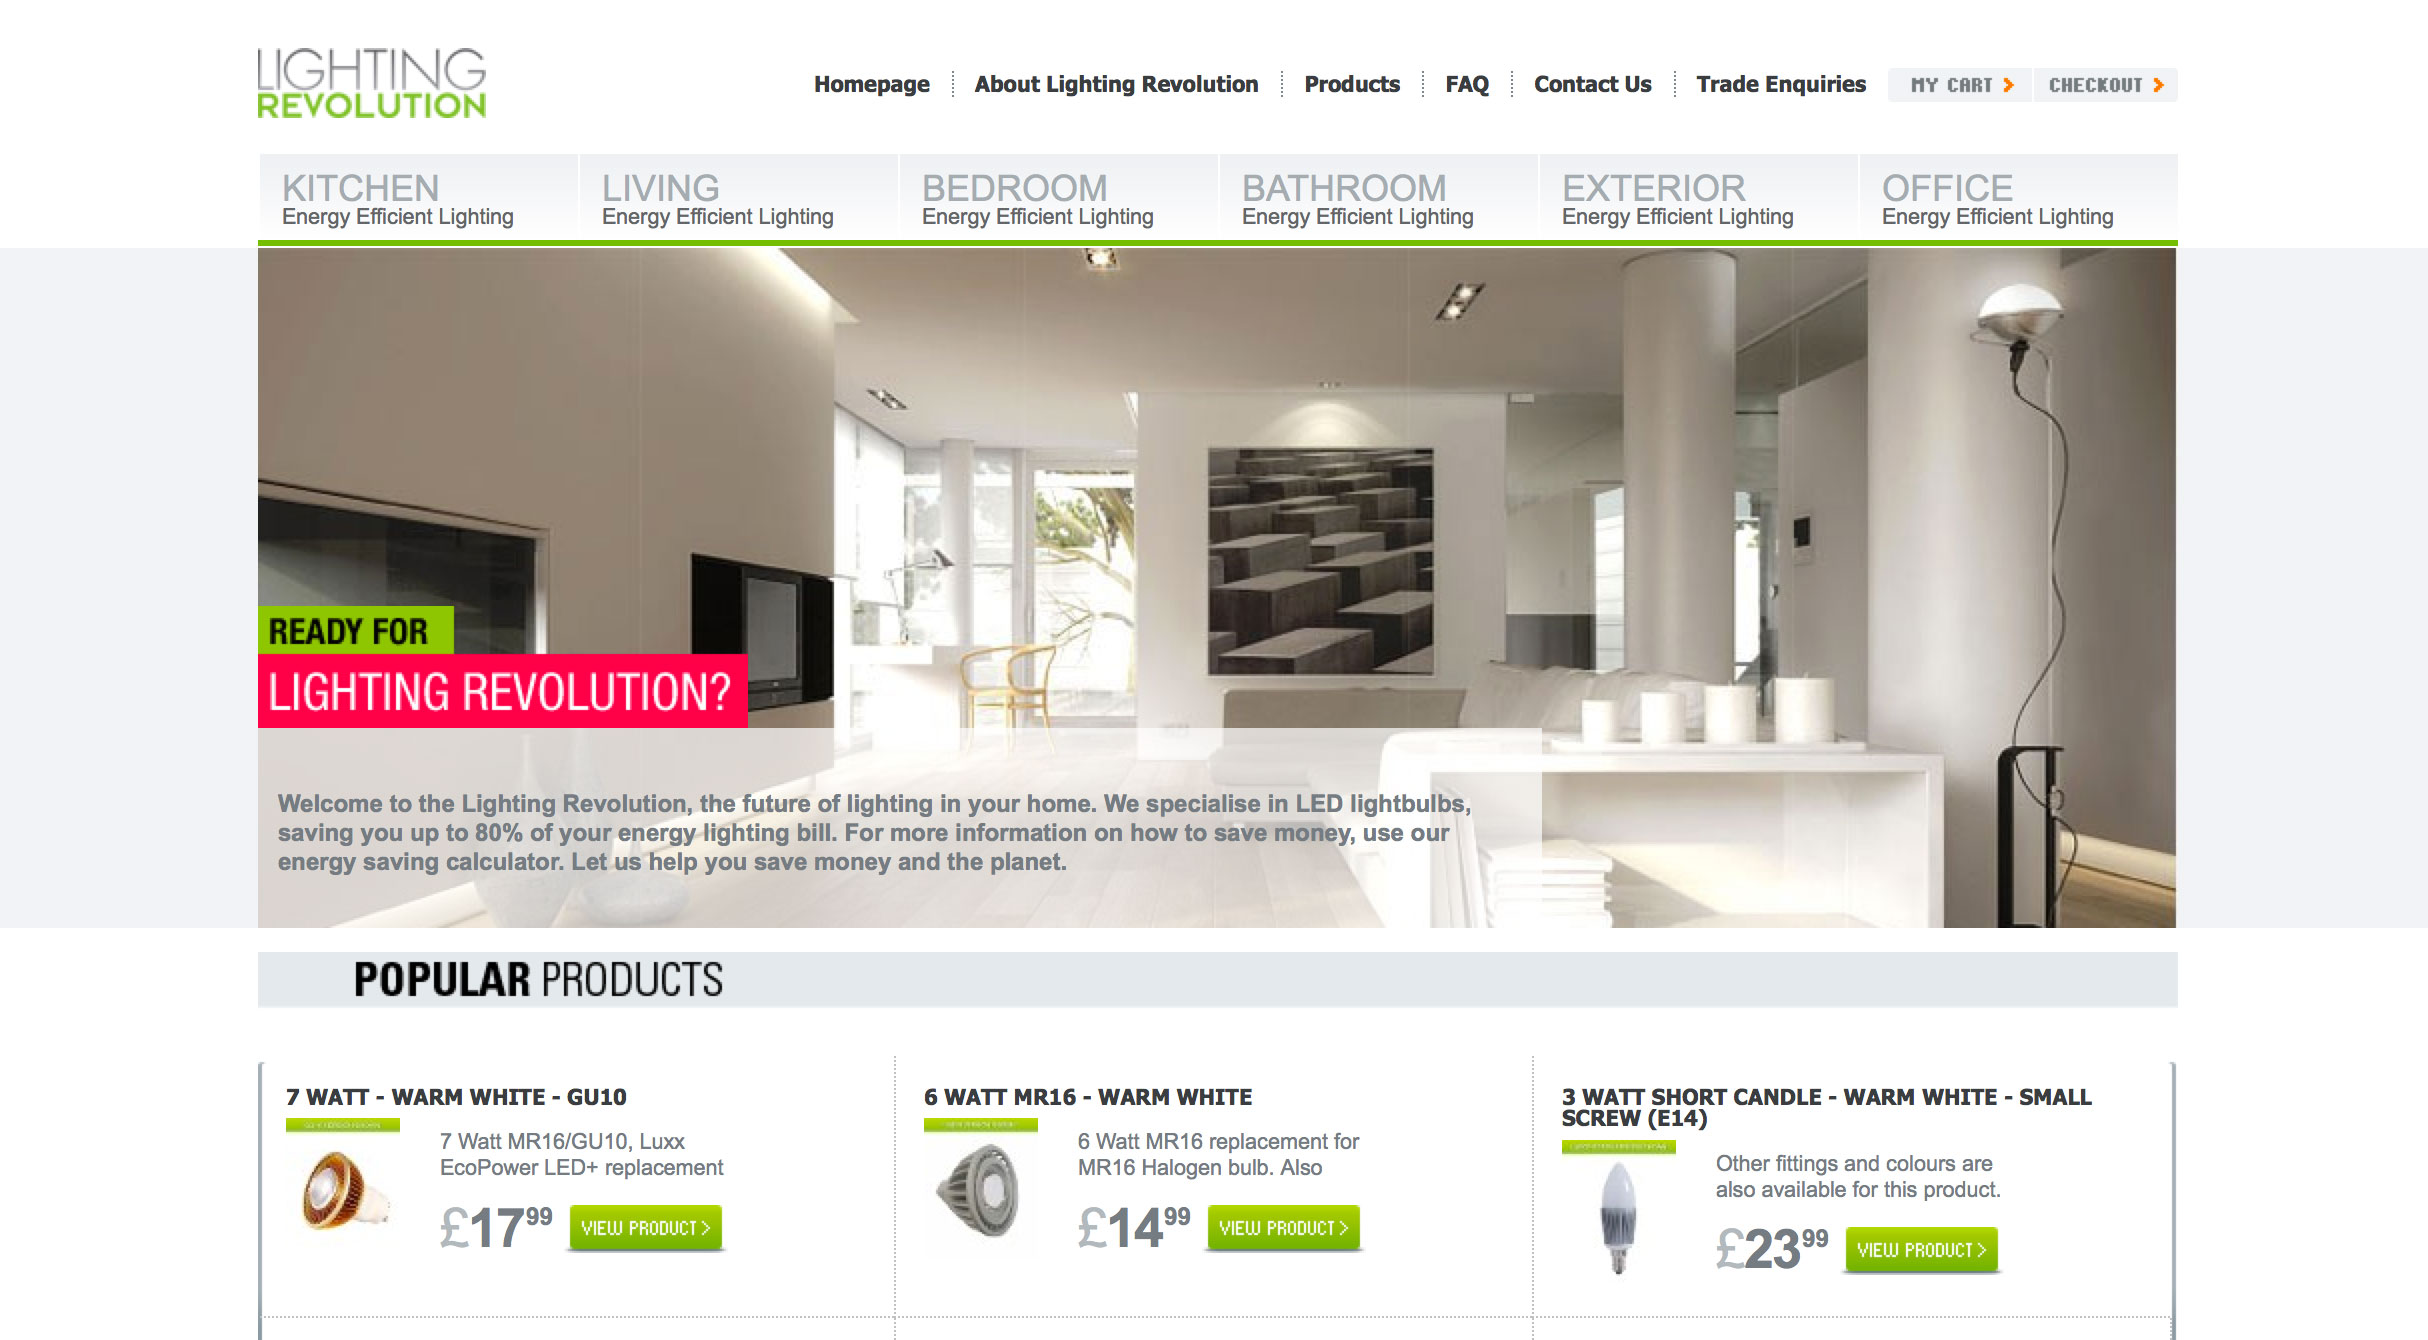 Lighting Revolution homepage screenshot